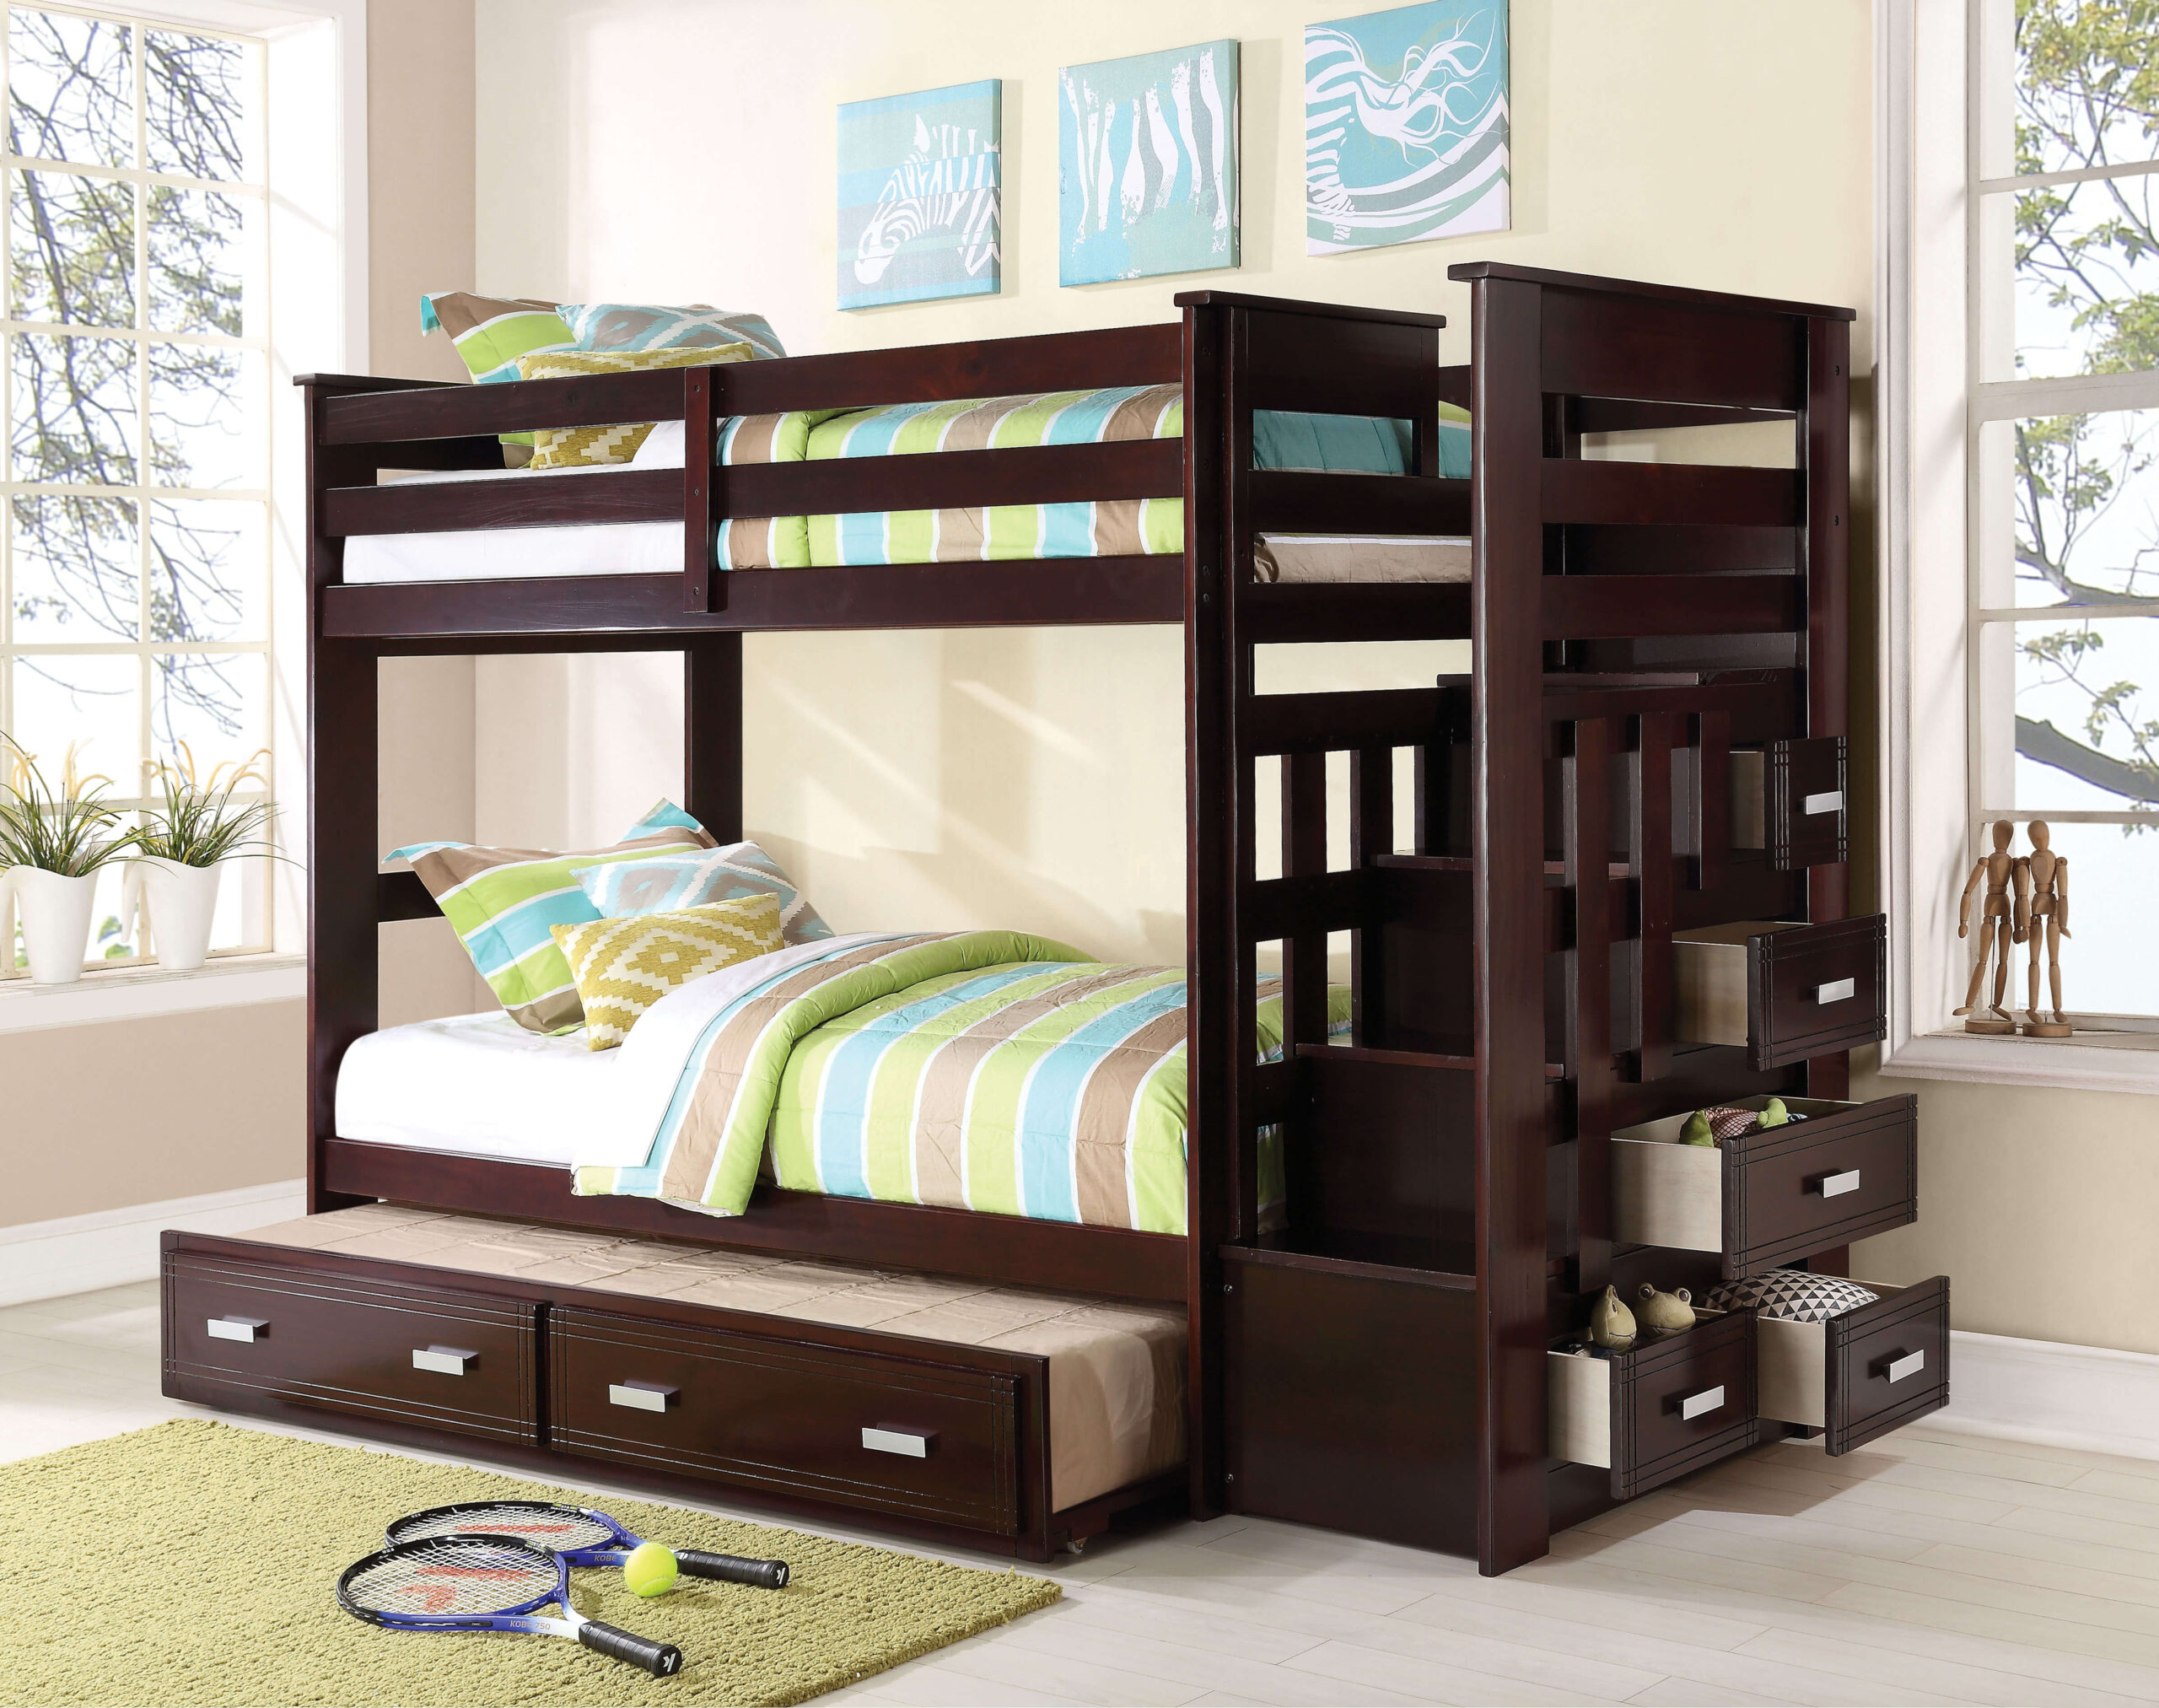 Acme Allentown Twin Bunkbed product image